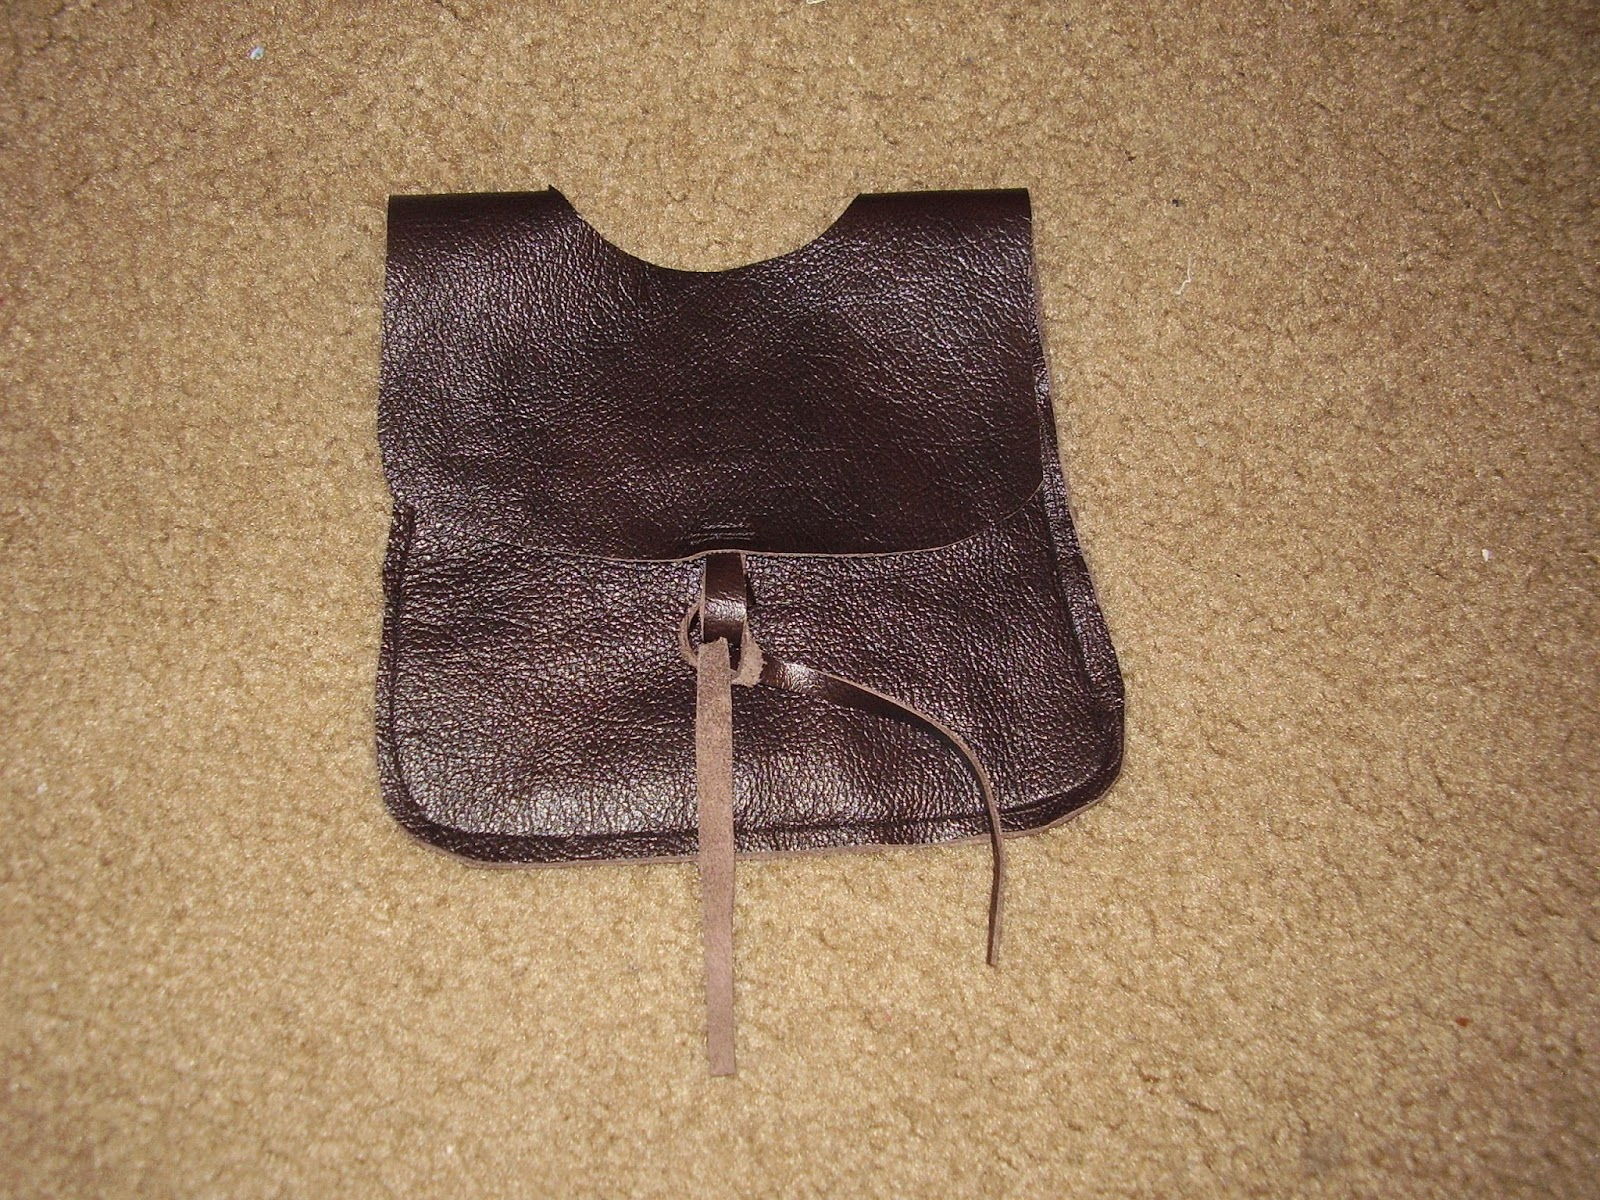 Finished medieval belt pouch, closed.